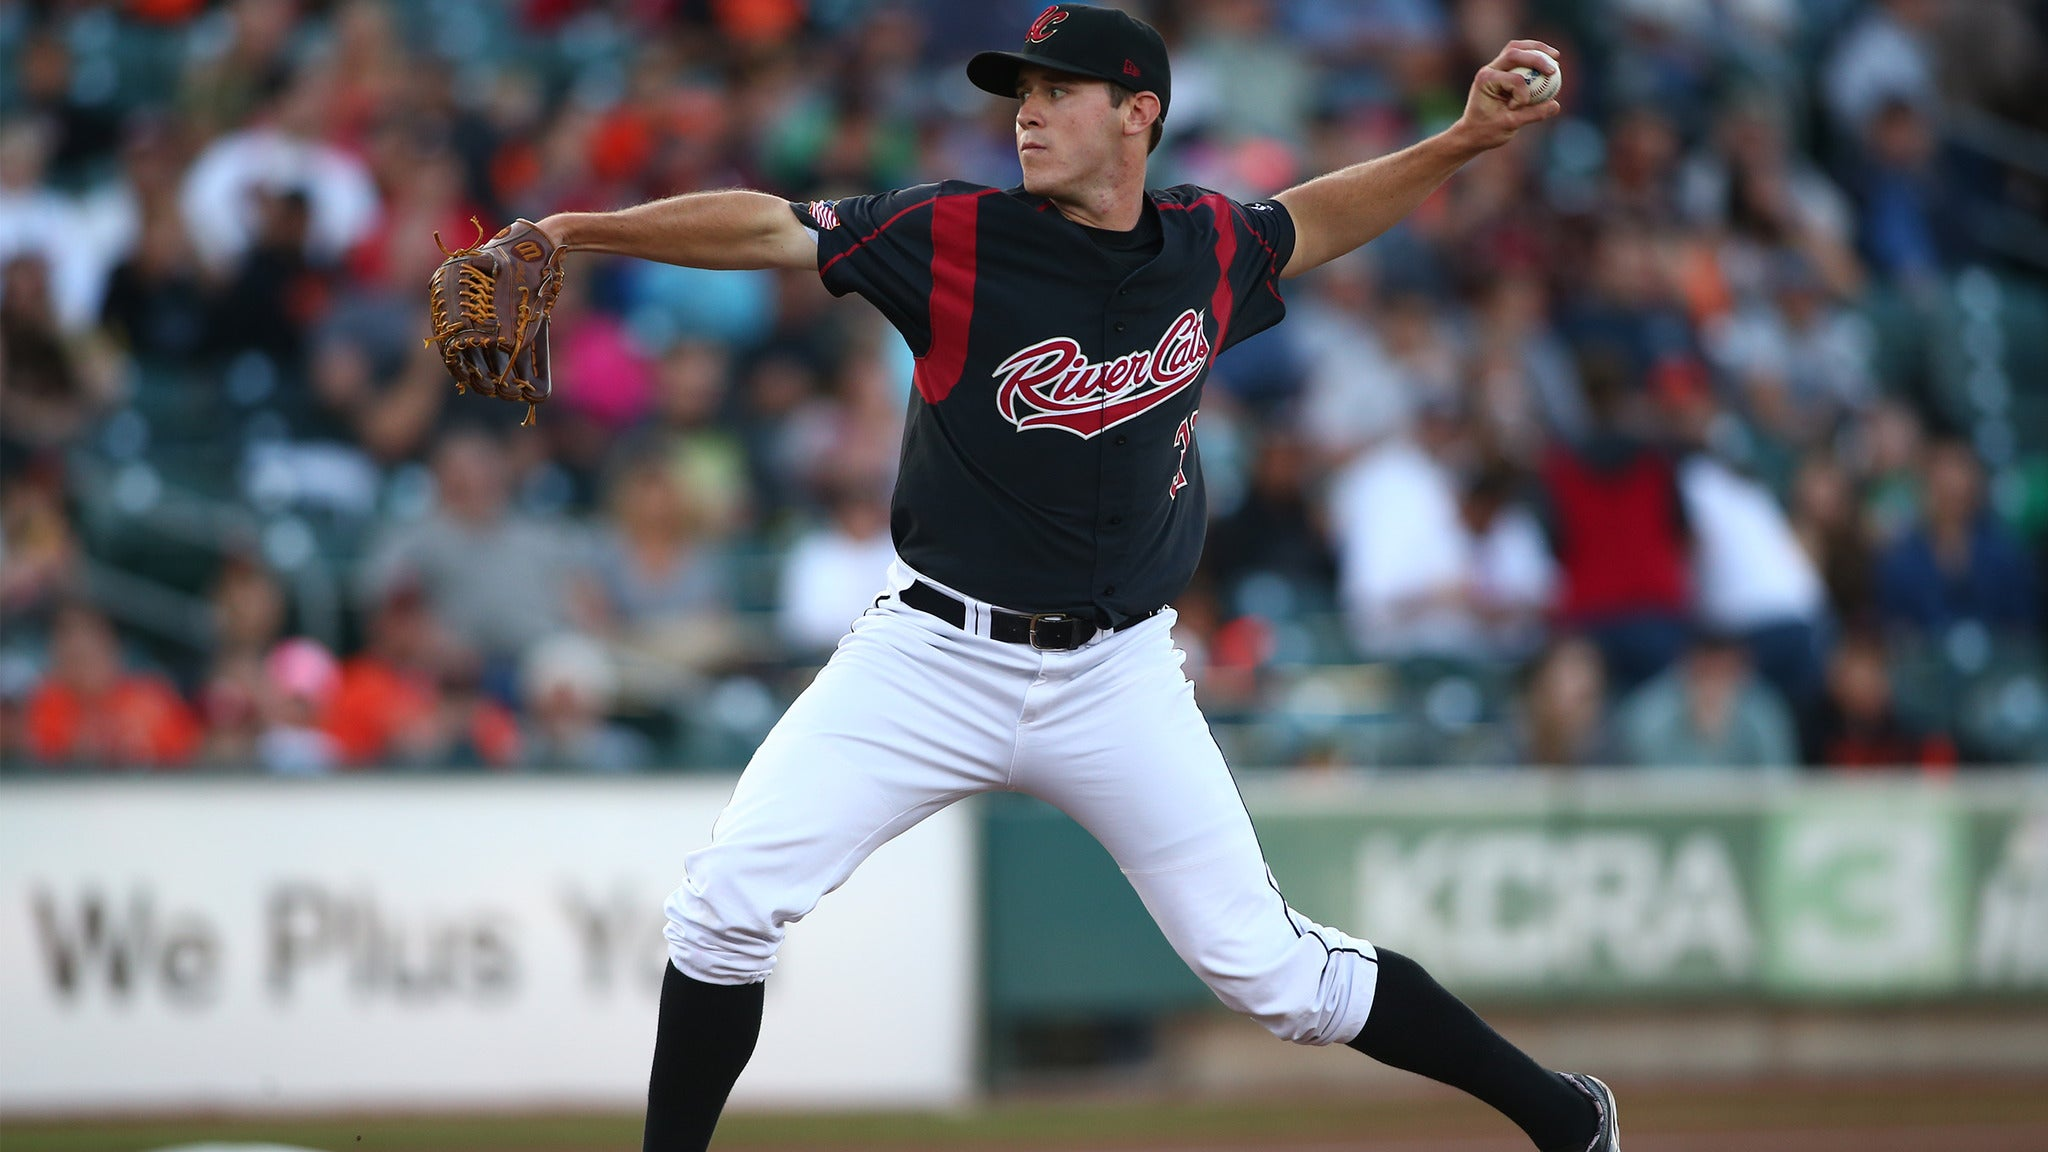 Sacramento River Cats vs. El Paso Chihuahuas at Raley Field